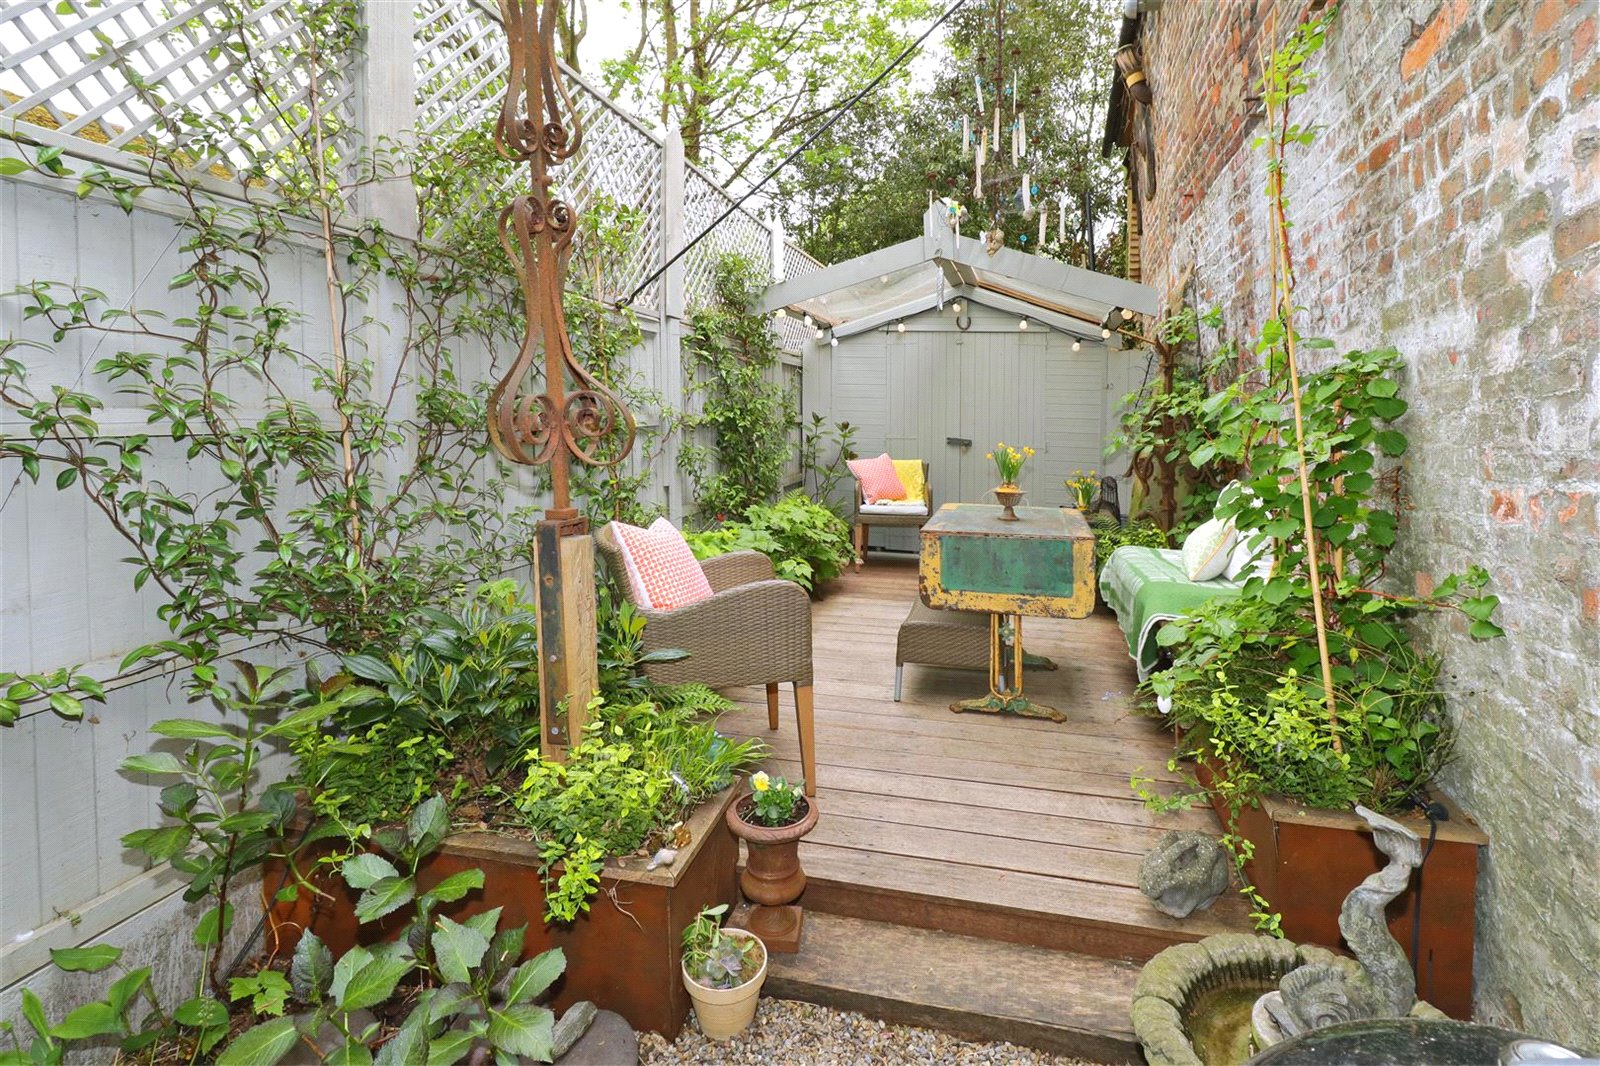 House for sale in Highgate, N6 5HX 5